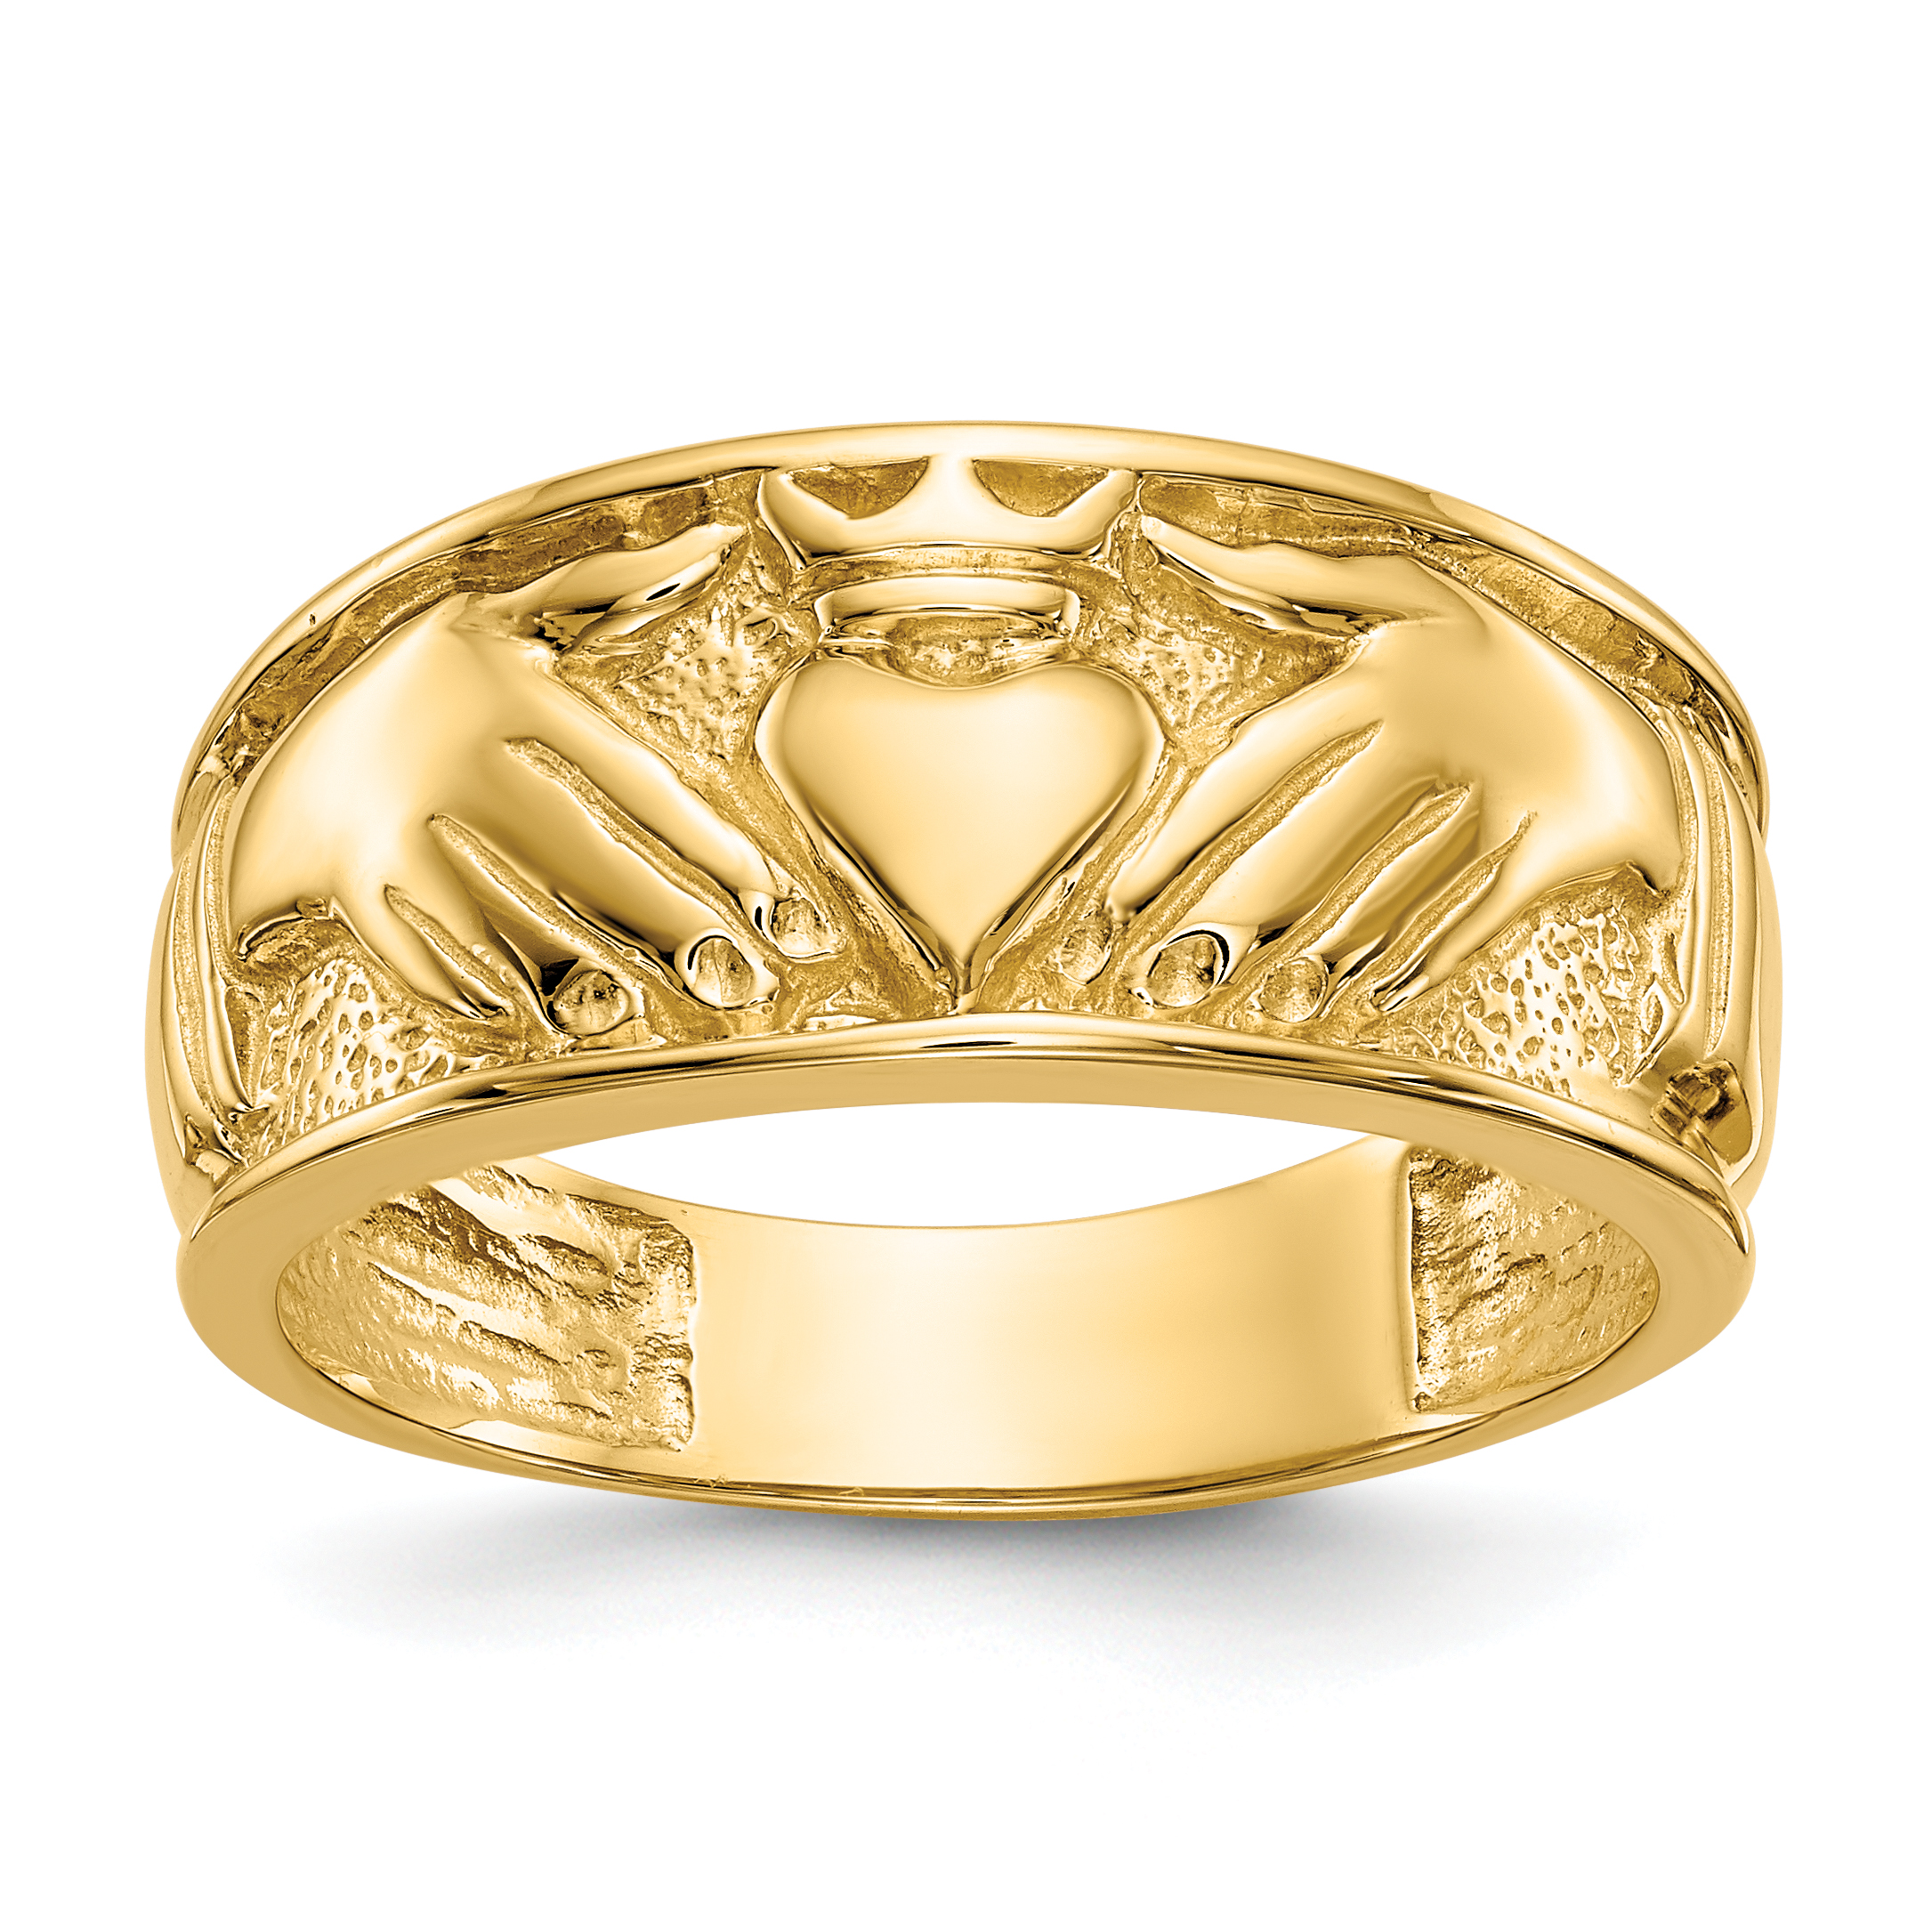 a8f6acf19a3 14K YELLOW GOLD MENS IRISH CLADDAGH CELTIC KNOT WEDDING RING BAND SIZE  10.00 MAN FINE JEWELRY GIFT FOR DAD MENS FOR HIM